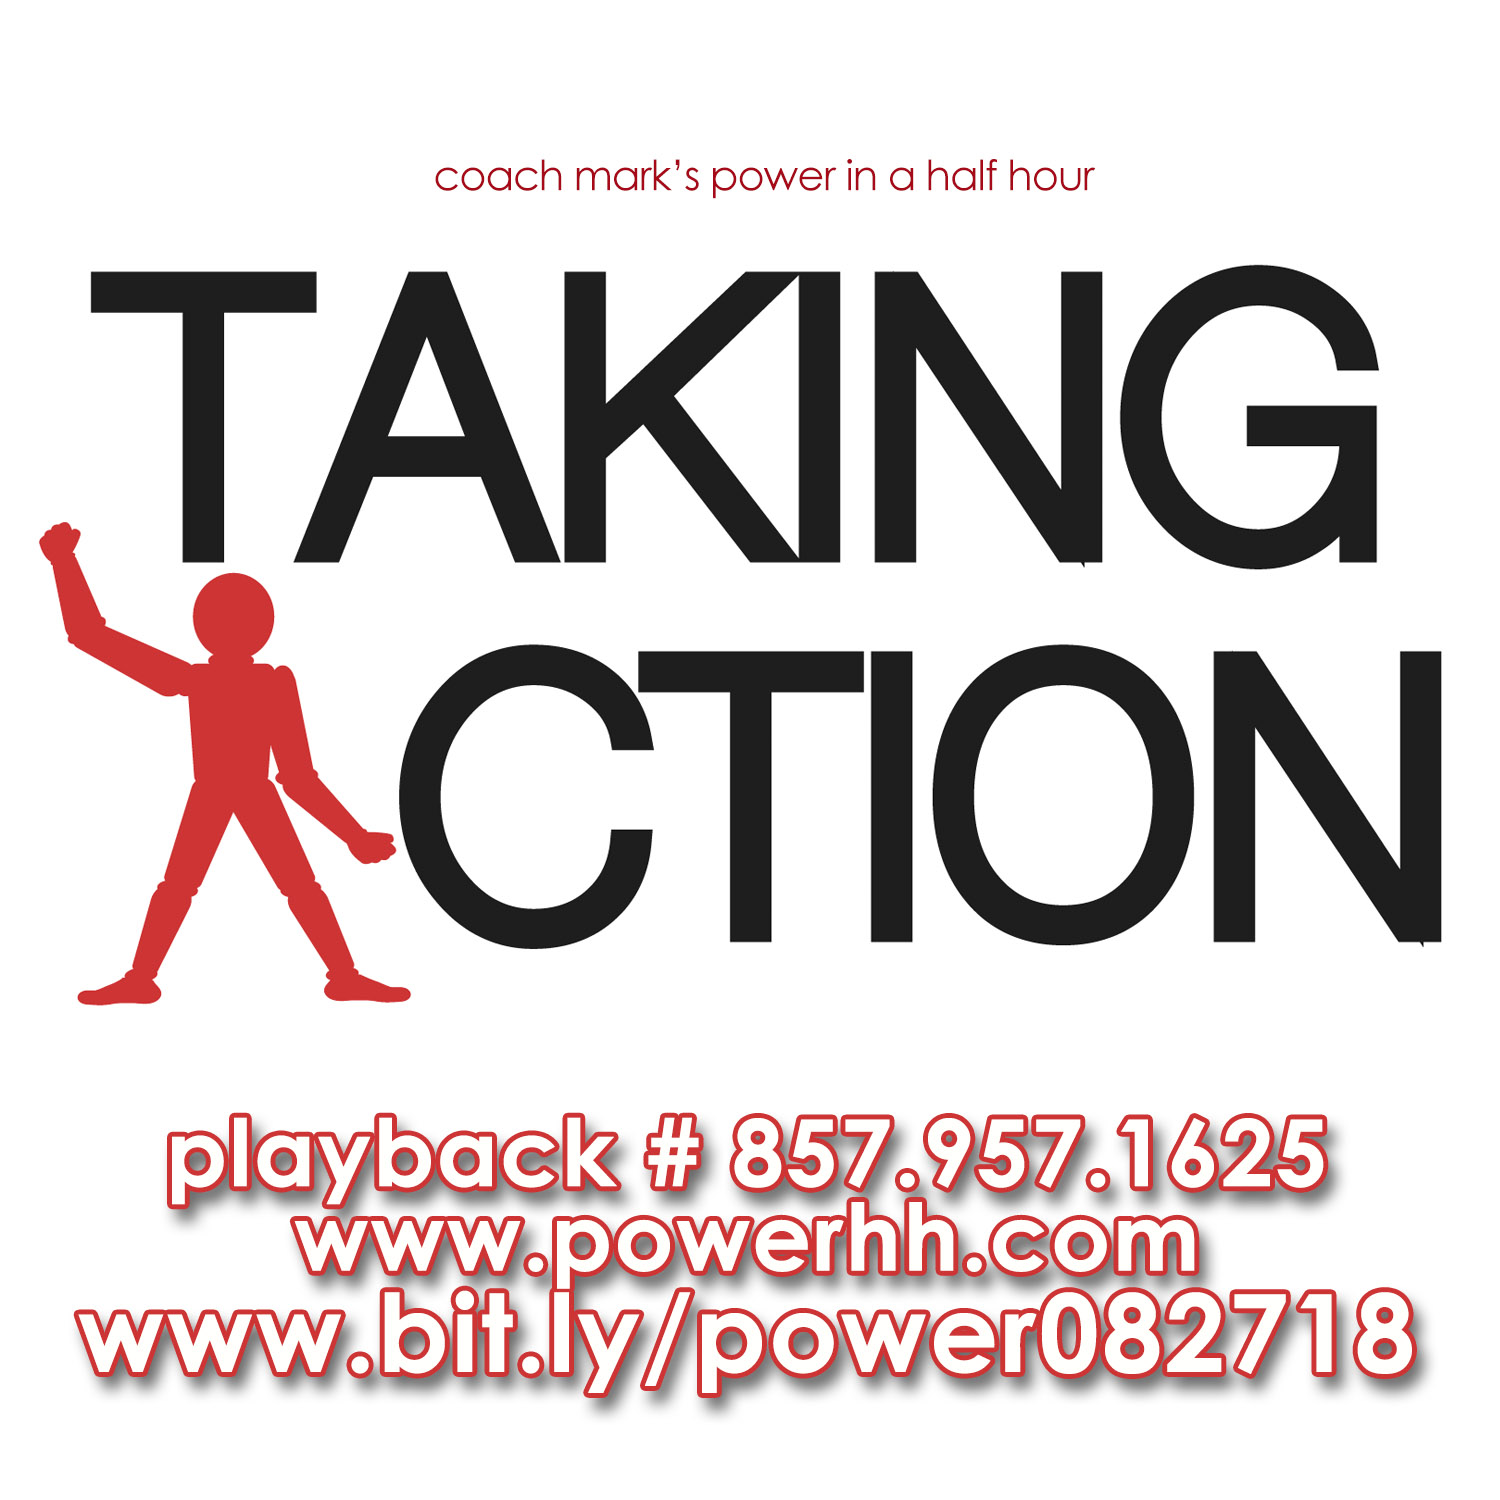 power replay 082718